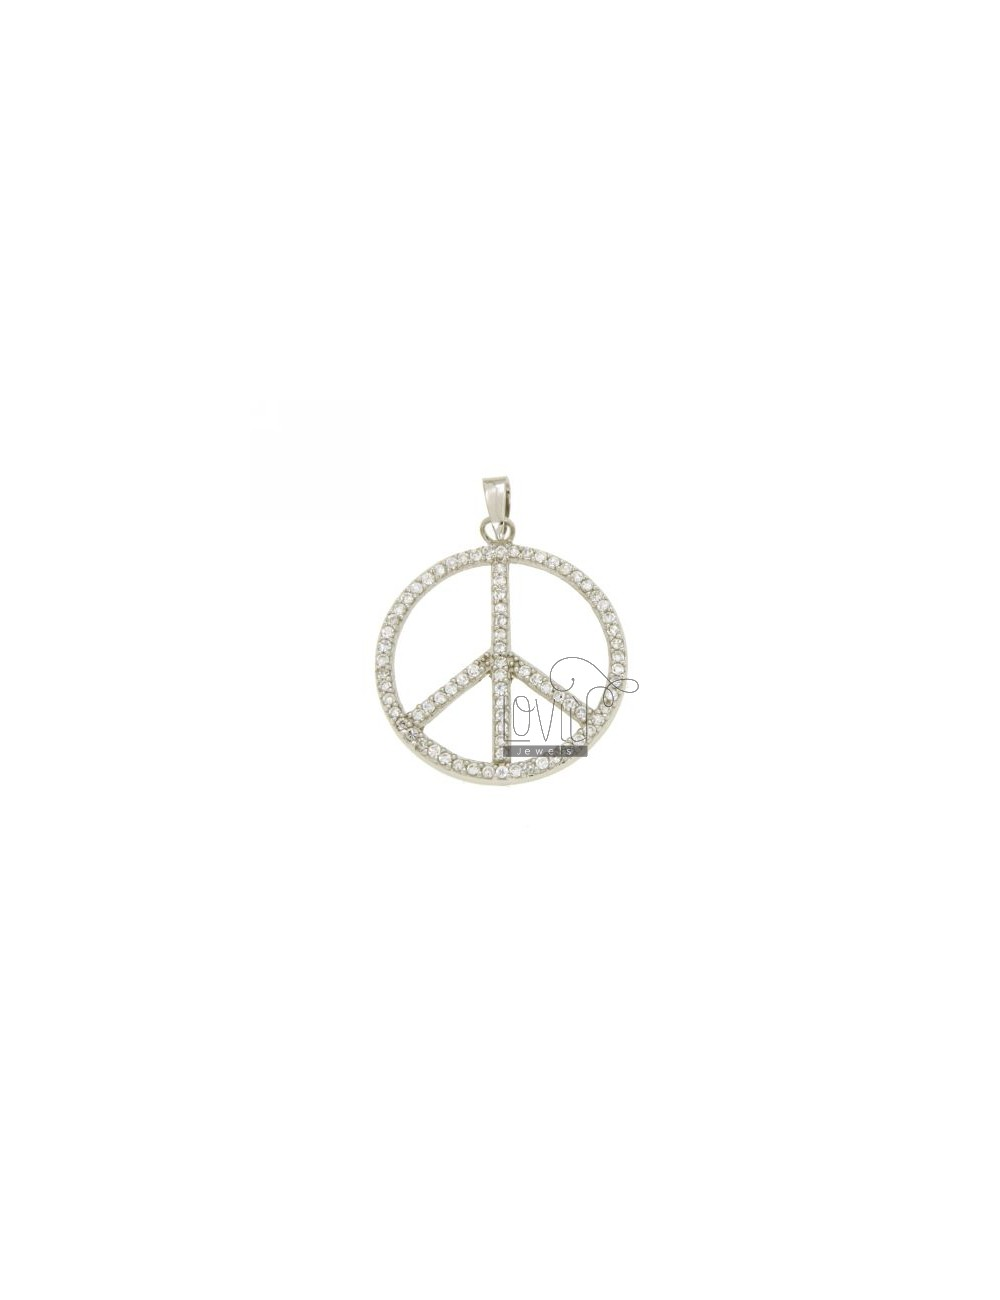 SYMBOL OF PEACE PENDANT 25 MM IN AG TIT 925 ‰ AND ZIRCONIA